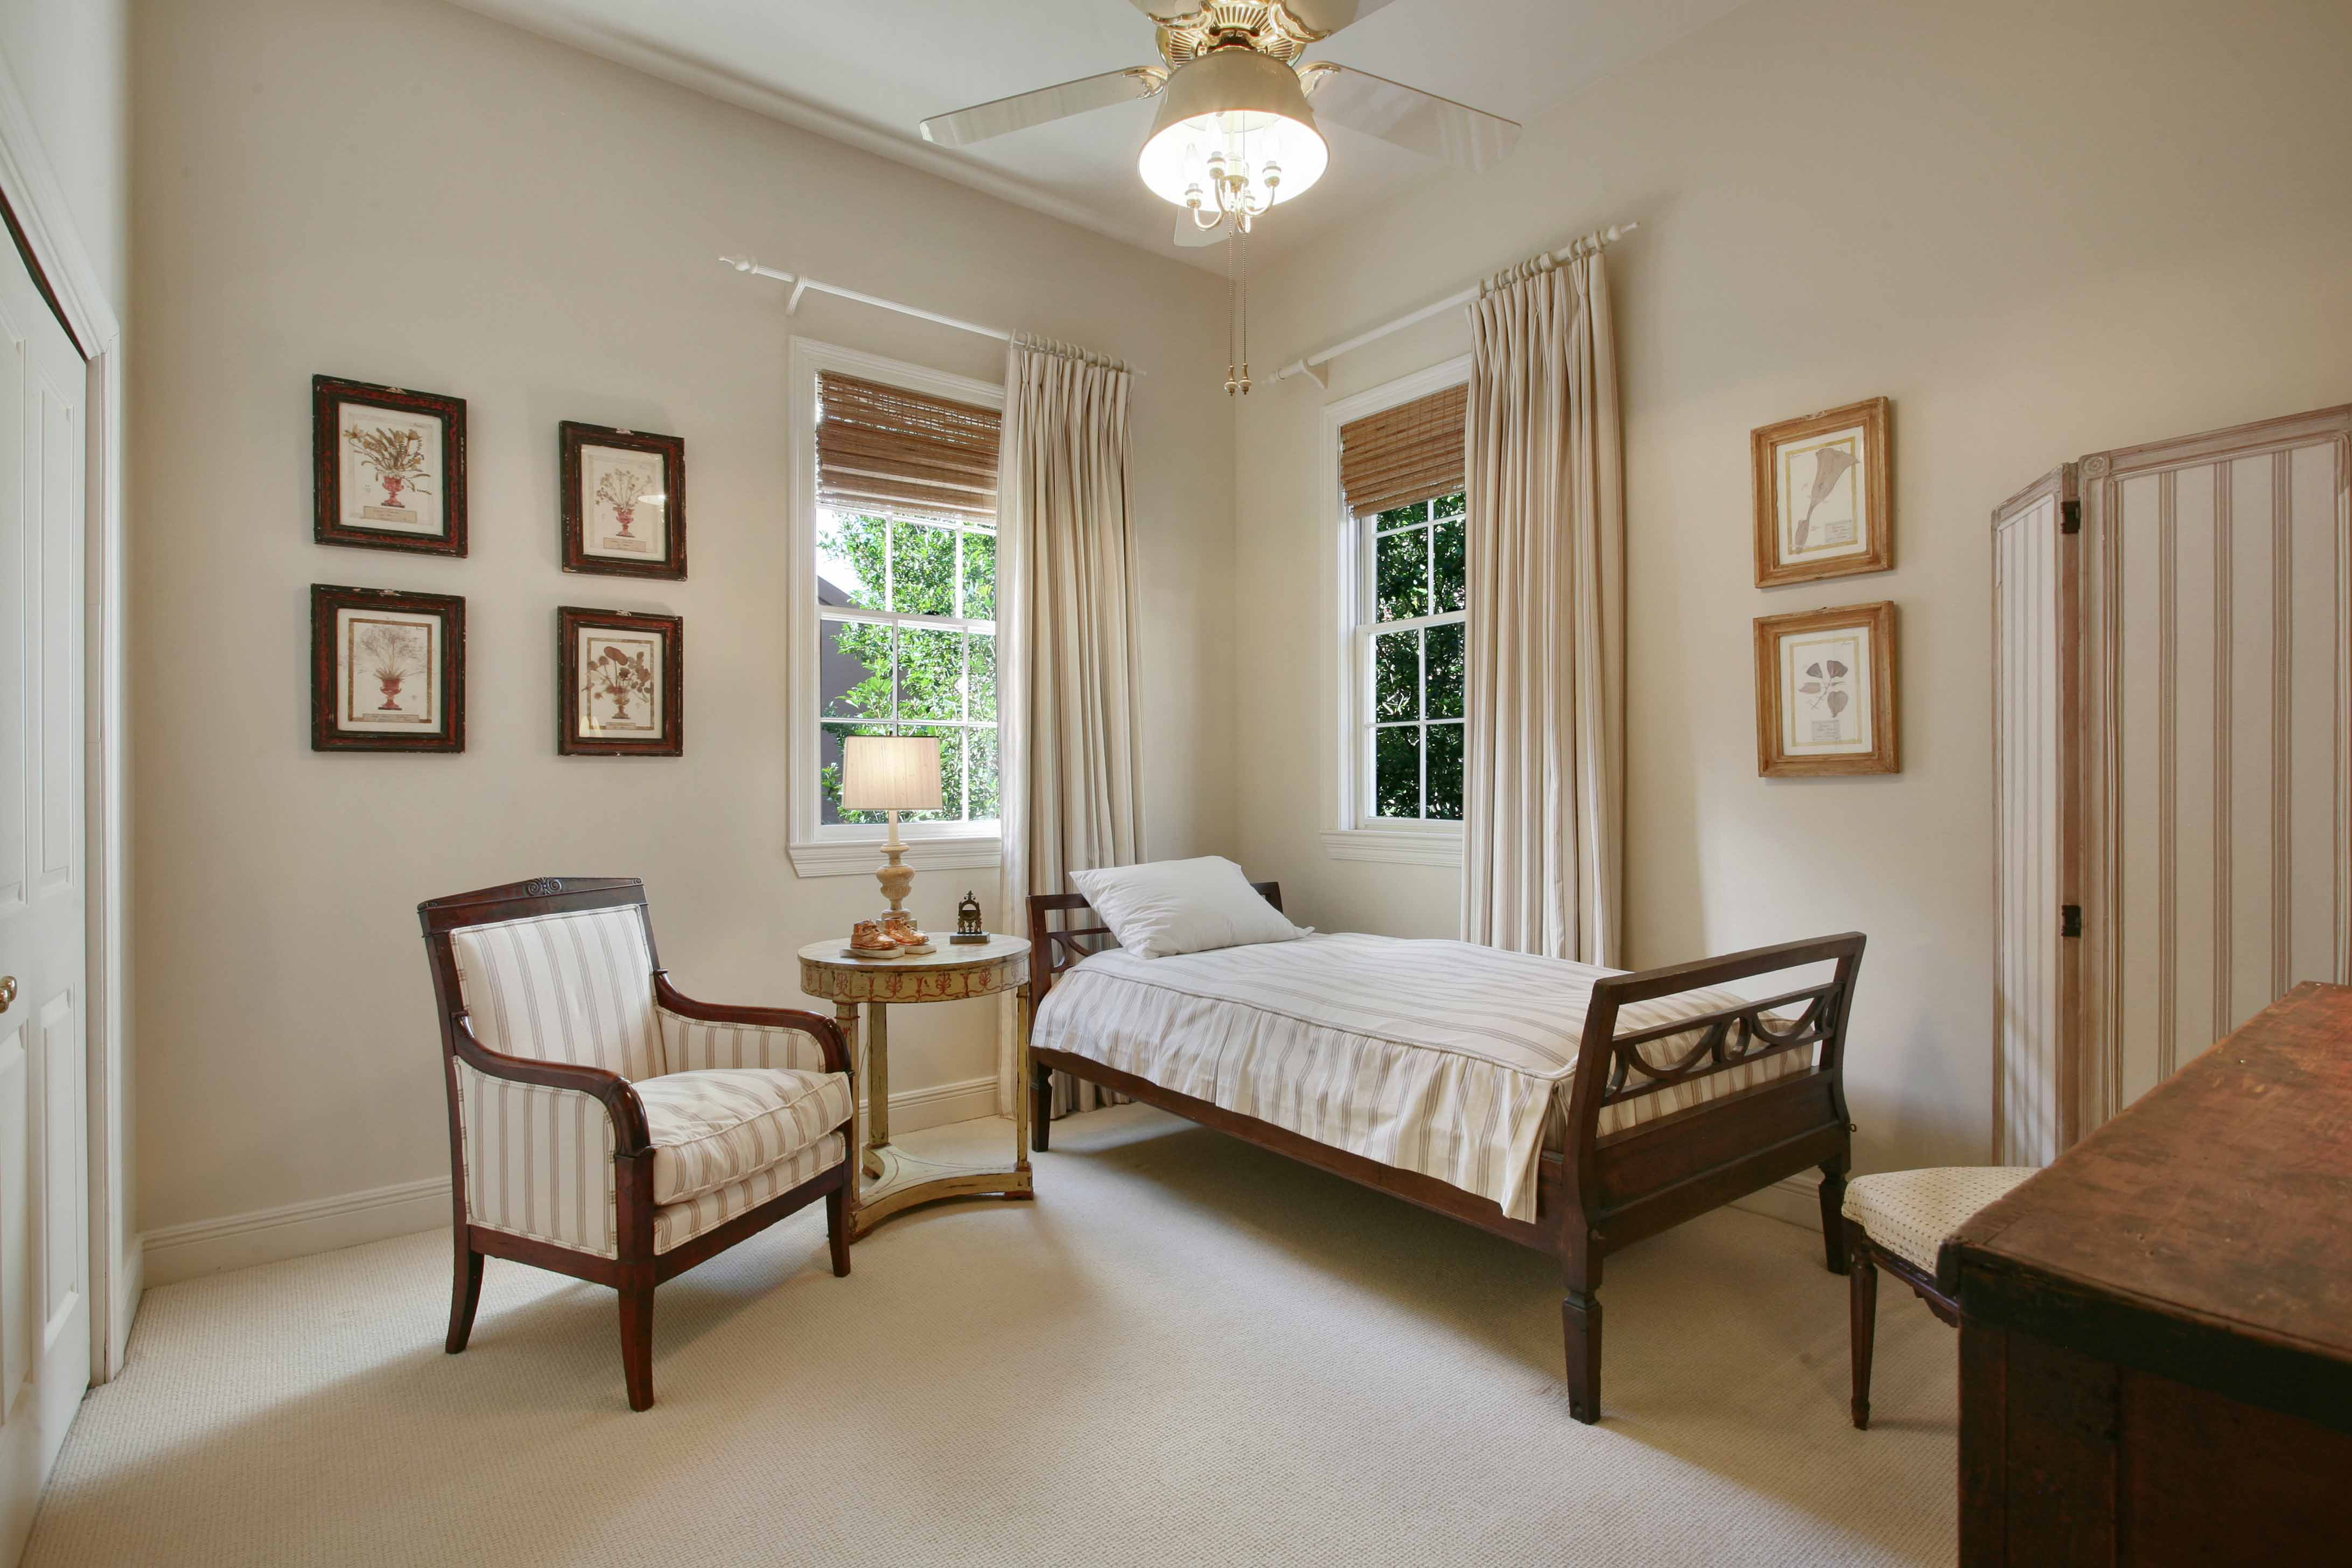 Beautiful French Quarter Home With Classic Appeal Asks 1